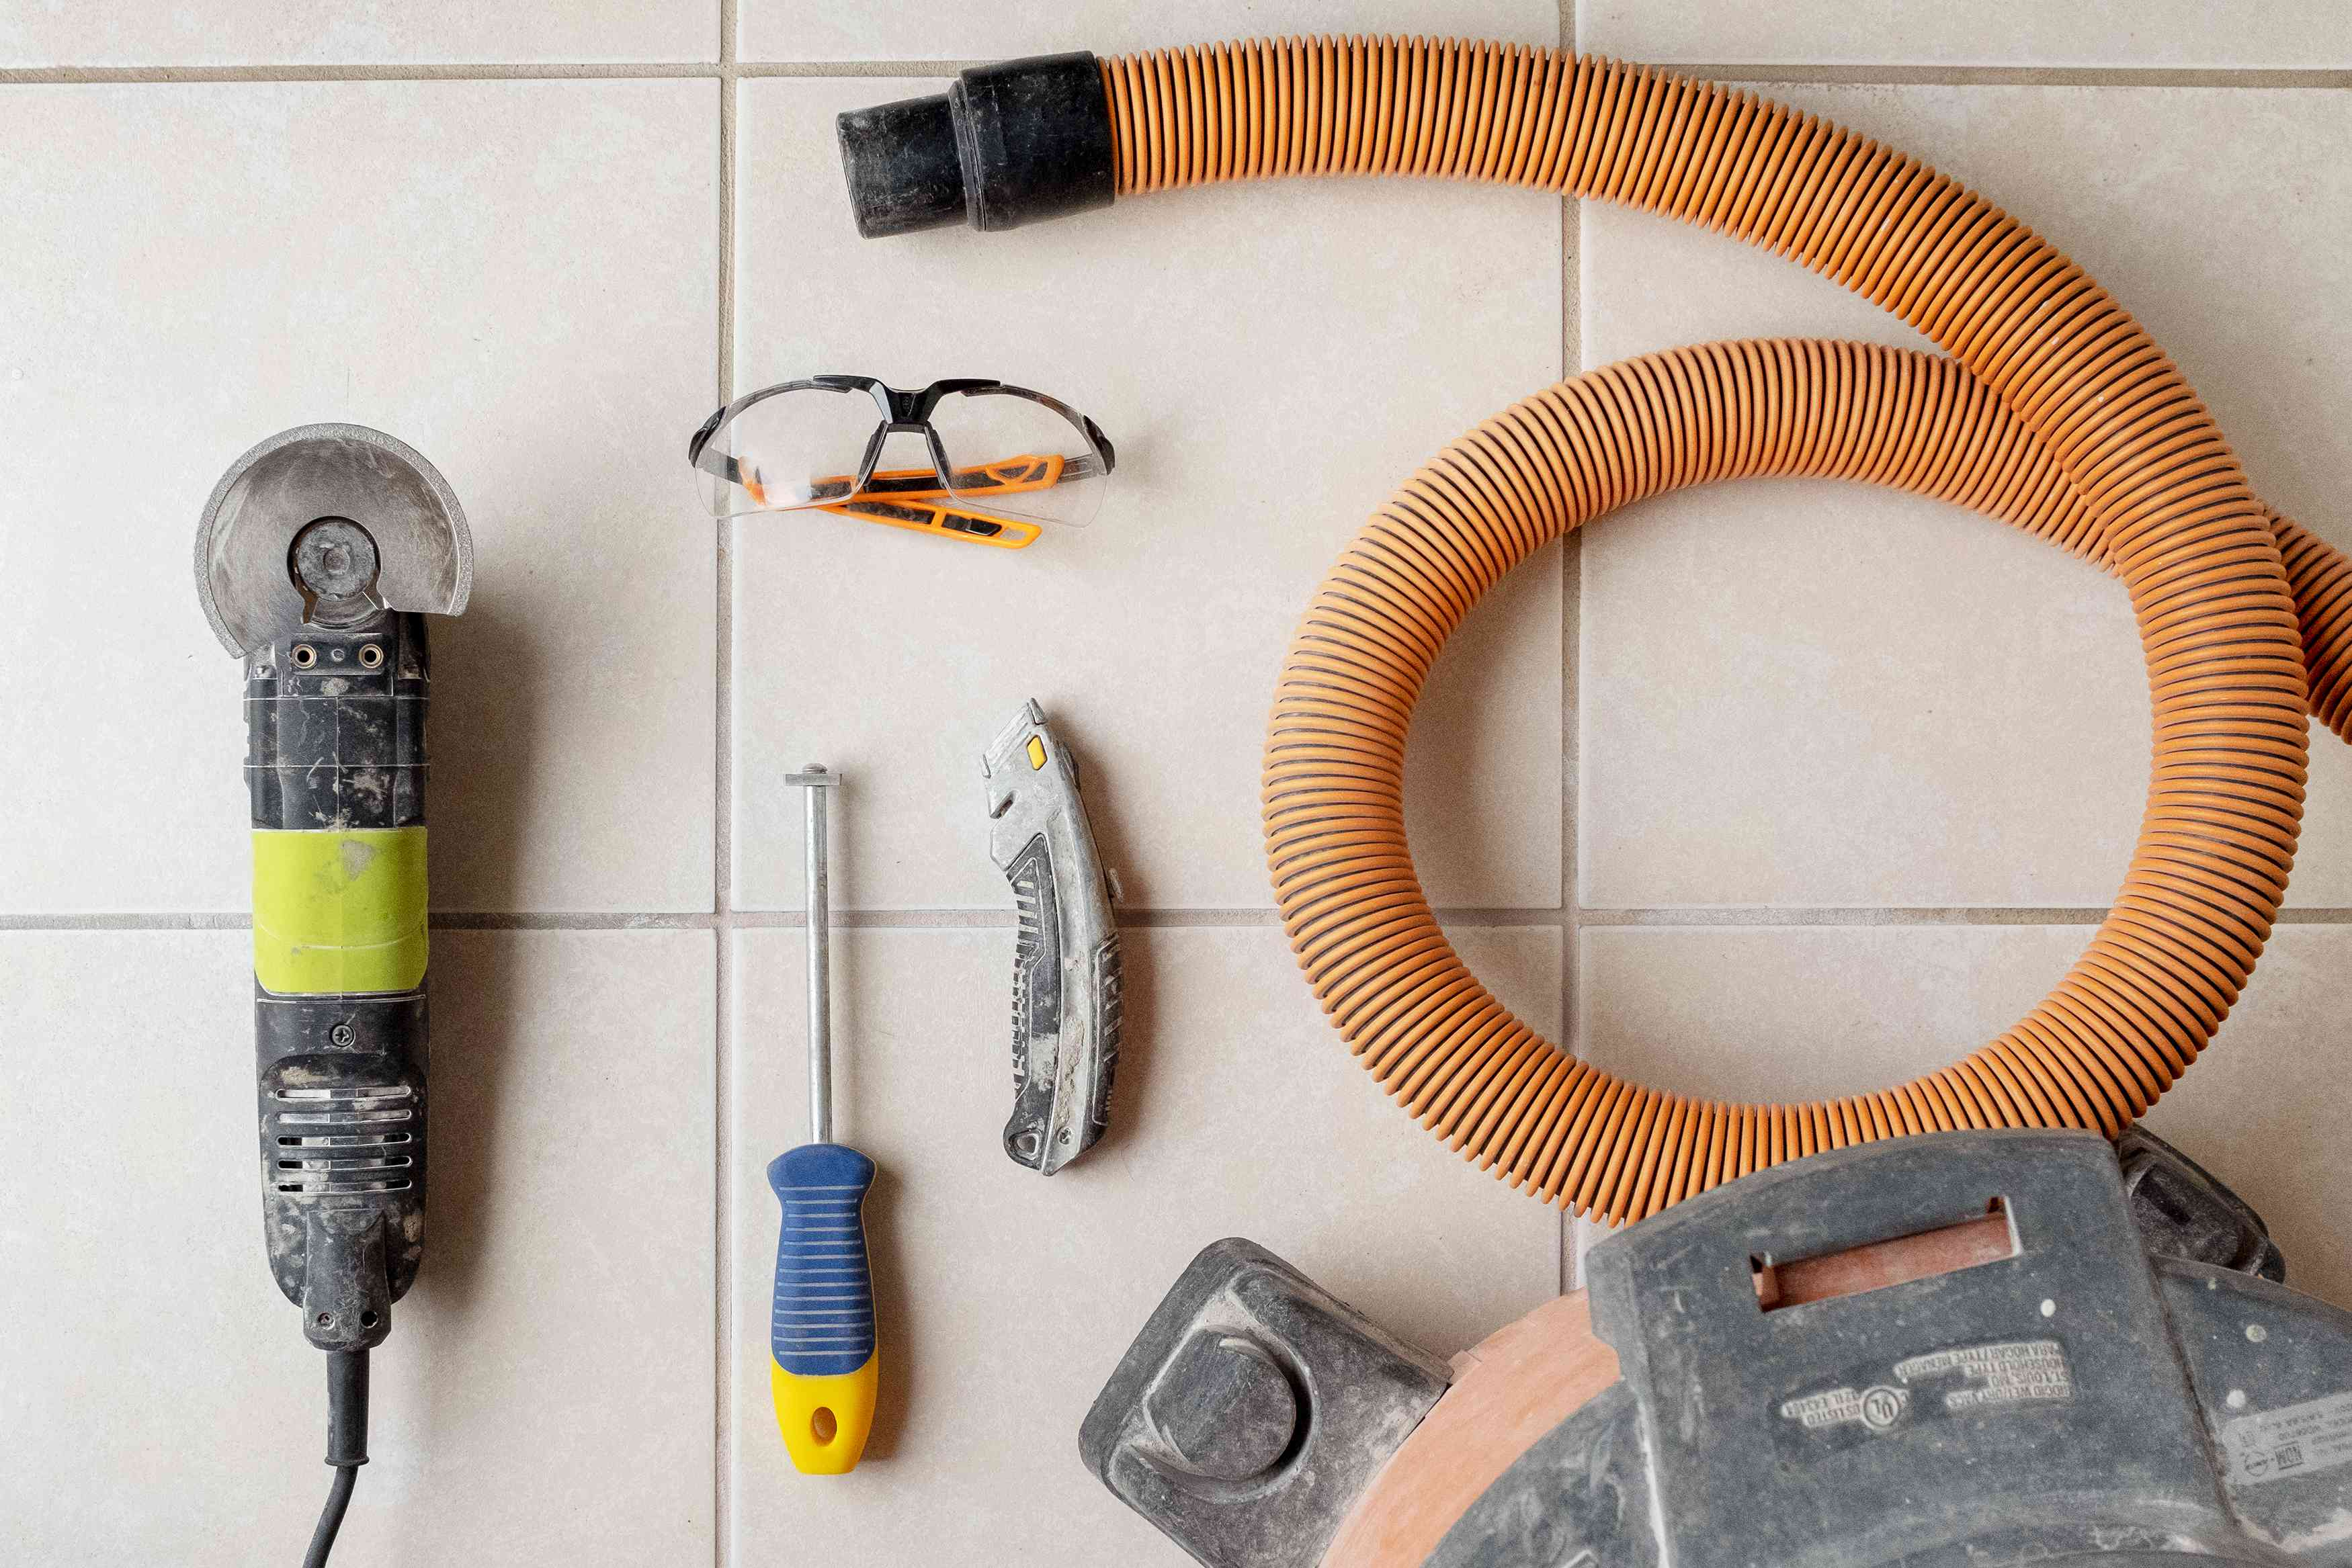 Tile grout removal tools